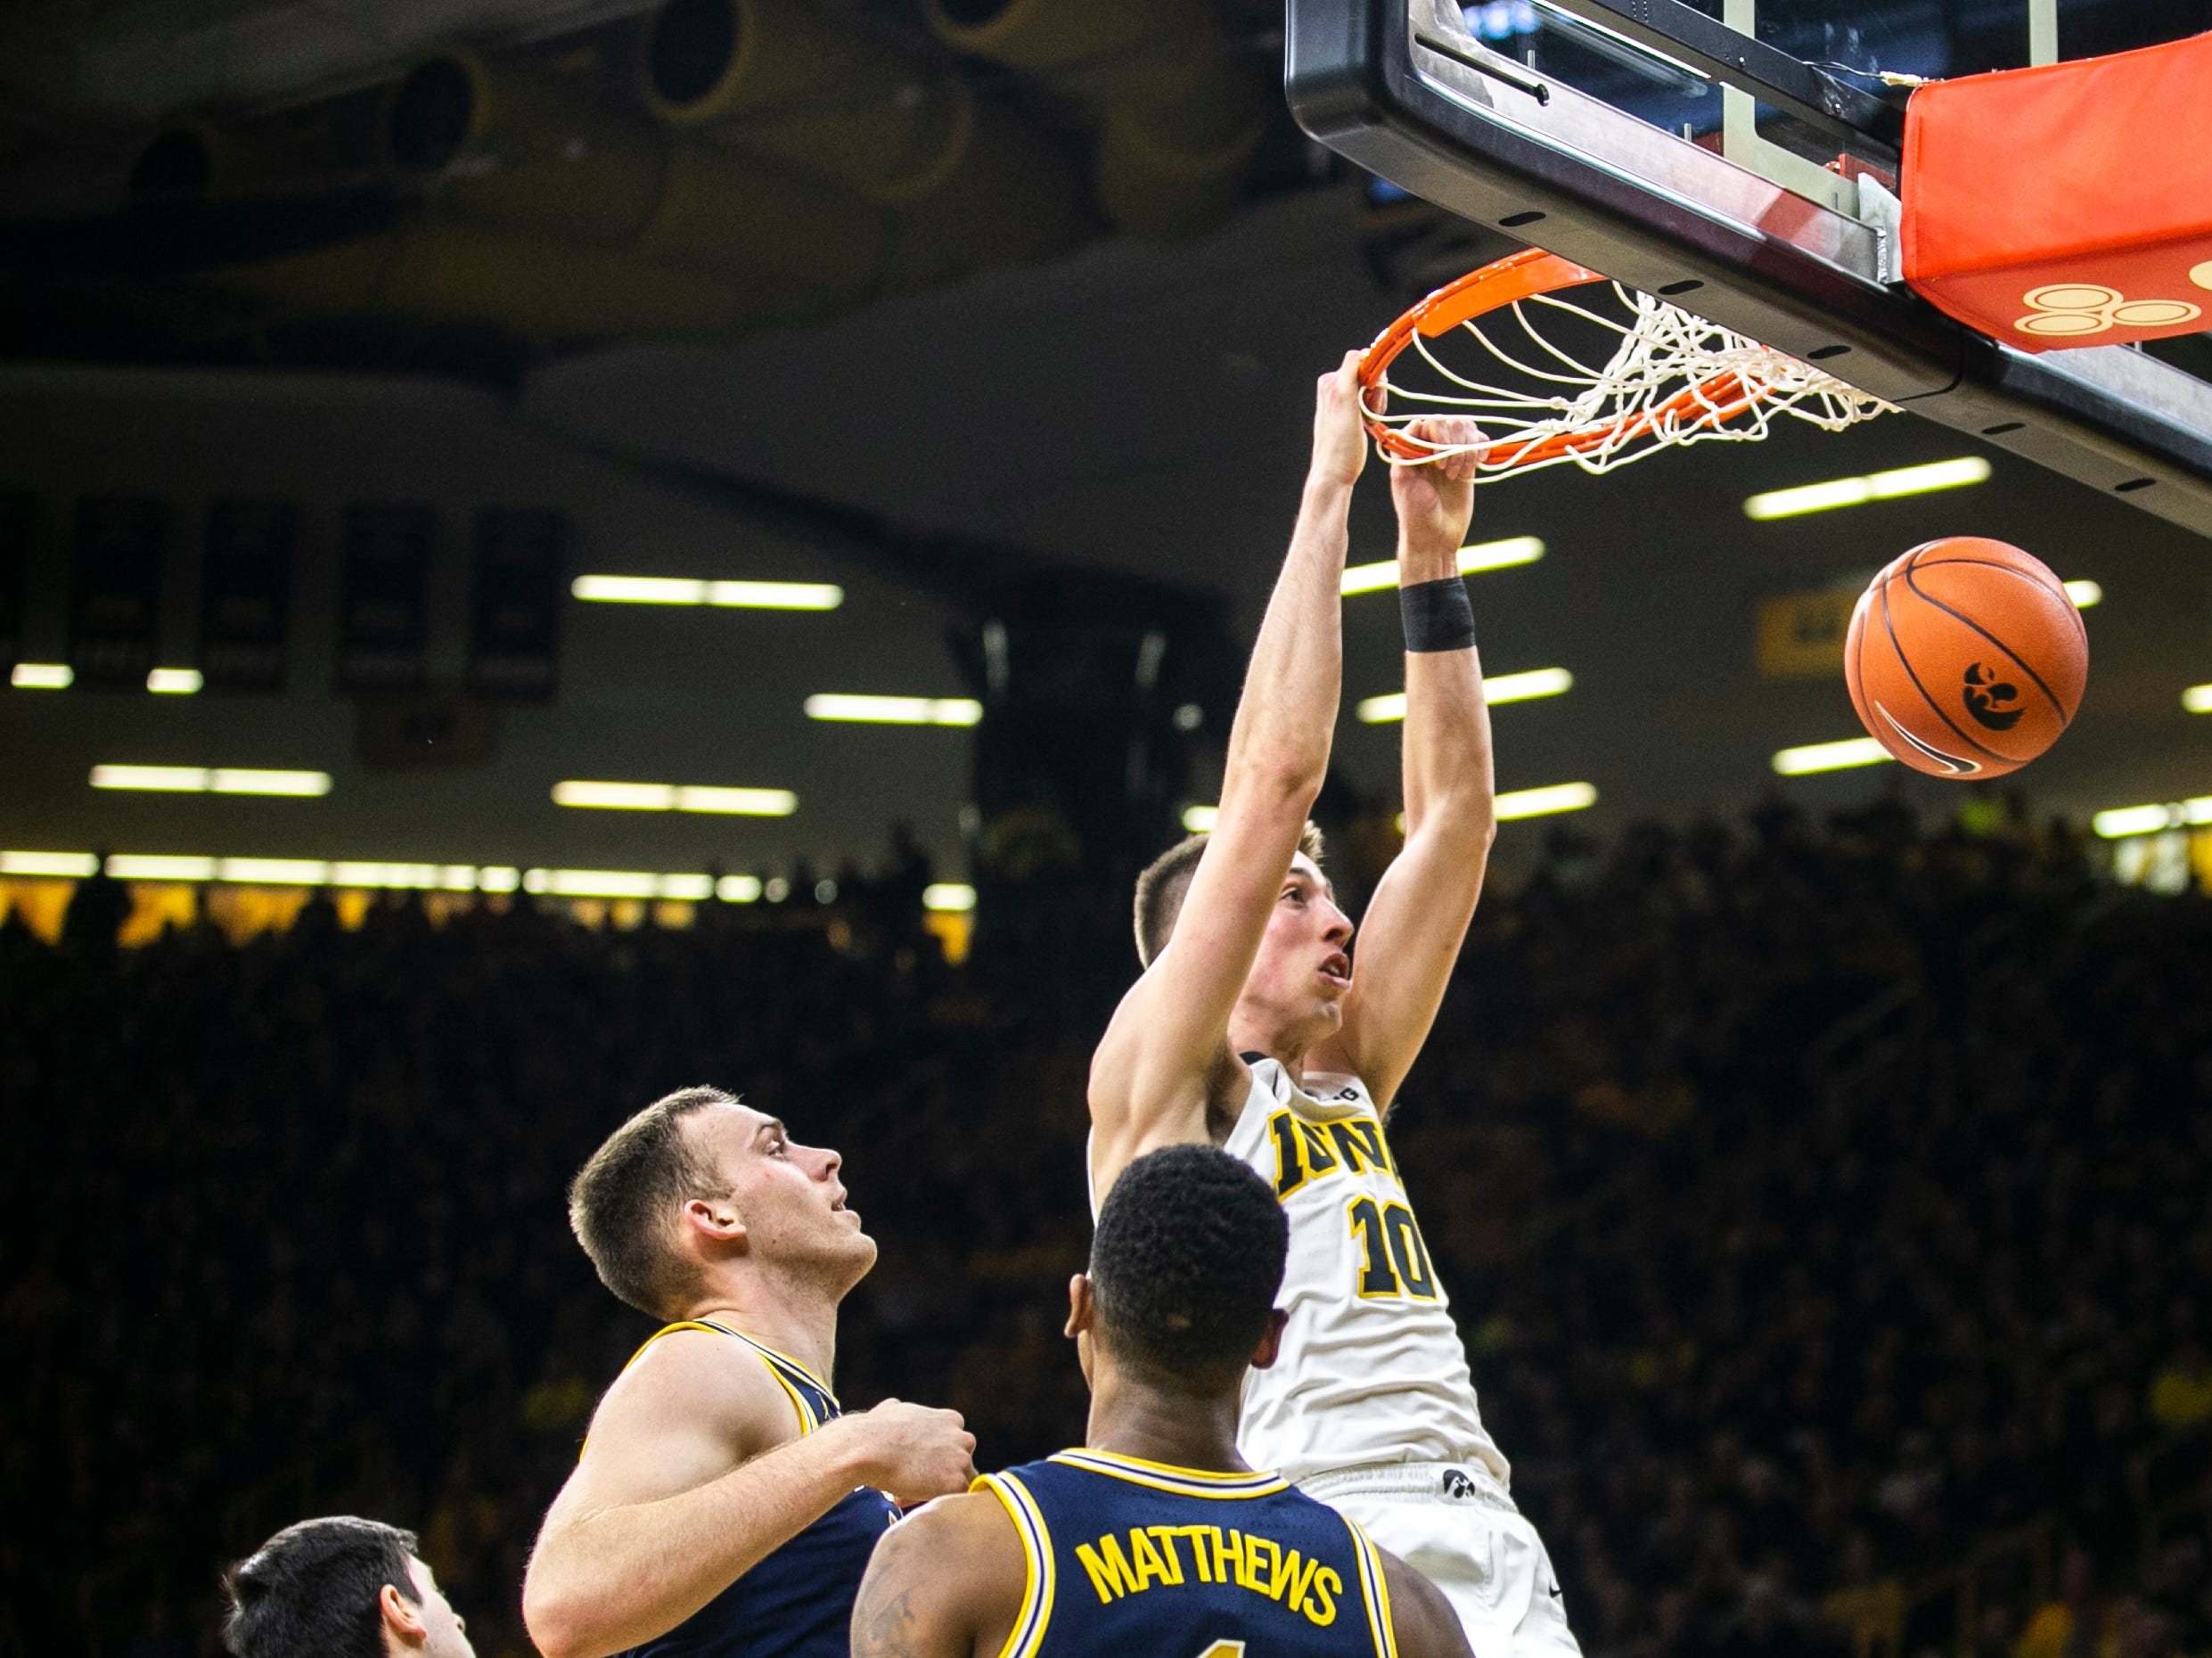 Iowa guard Joe Wieskamp (10) dunks during a NCAA Big Ten Conference men's basketball game on Friday, Feb. 1, 2019, at Carver-Hawkeye Arena in Iowa City, Iowa.